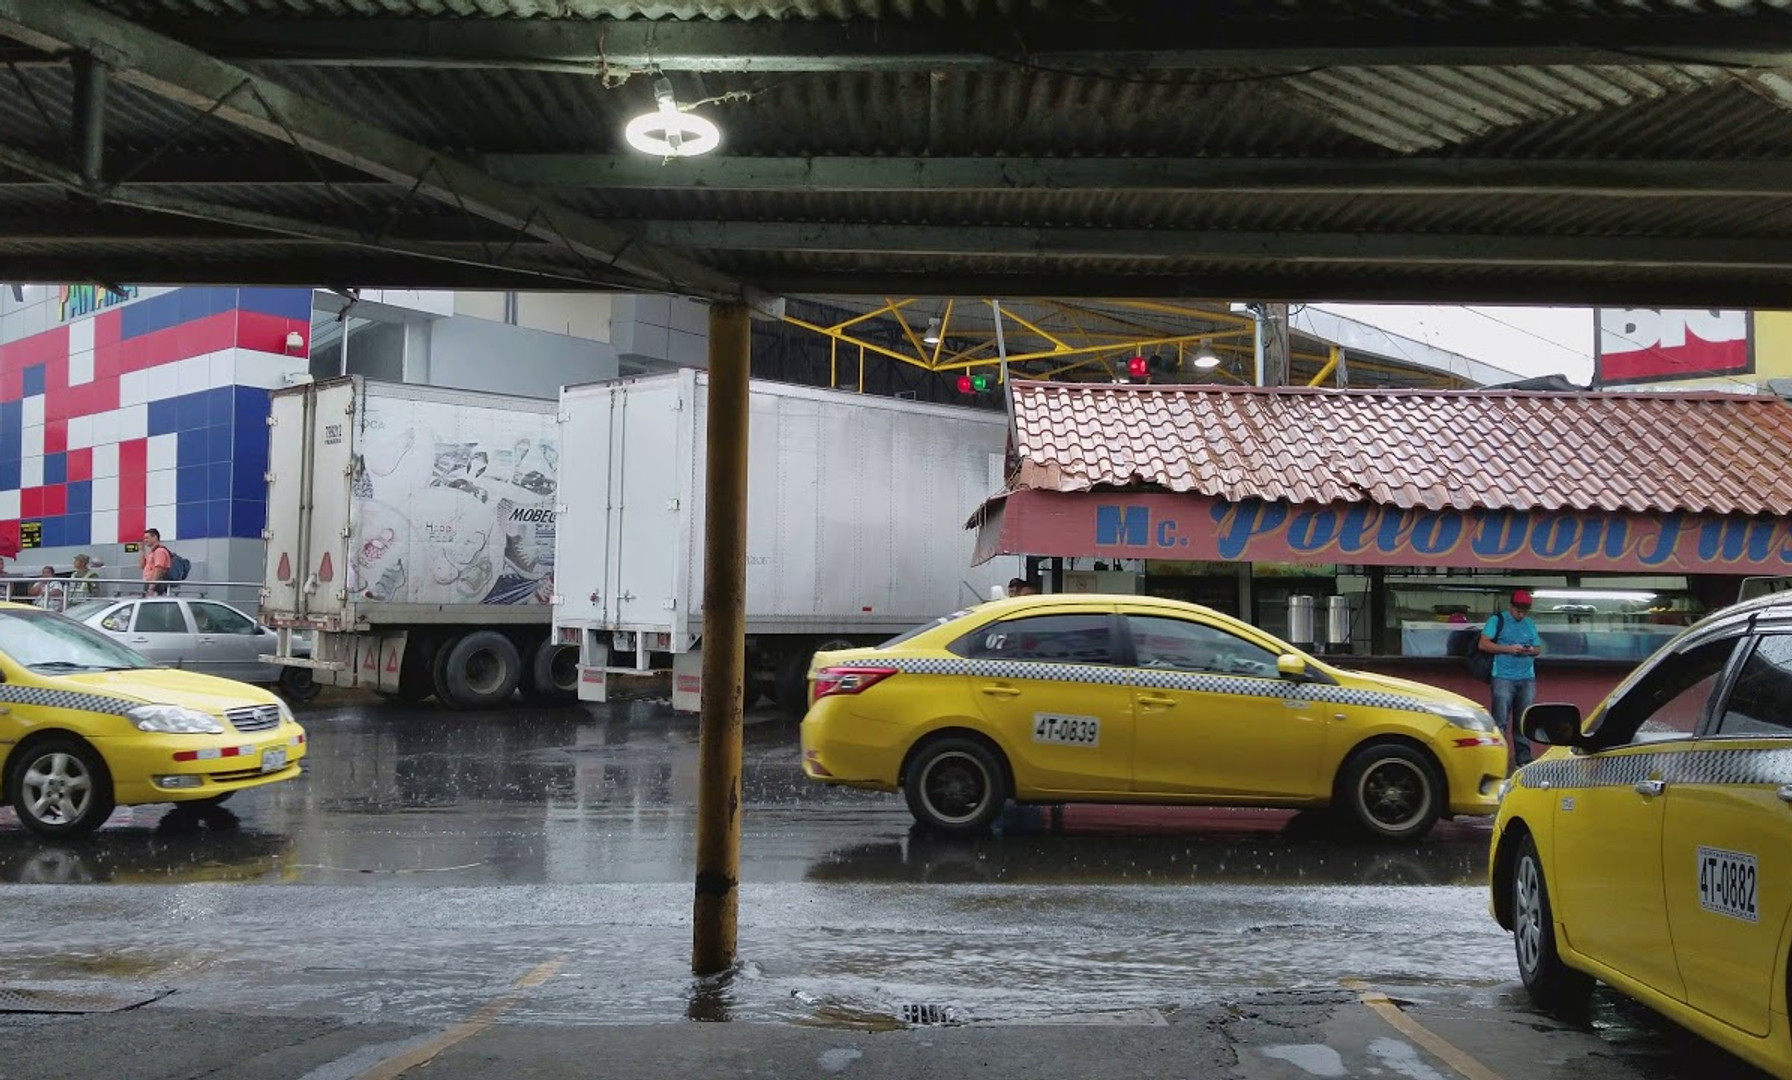 Afternoon Rains from the Panama Taxi Stand at Paso Canoas, Panama